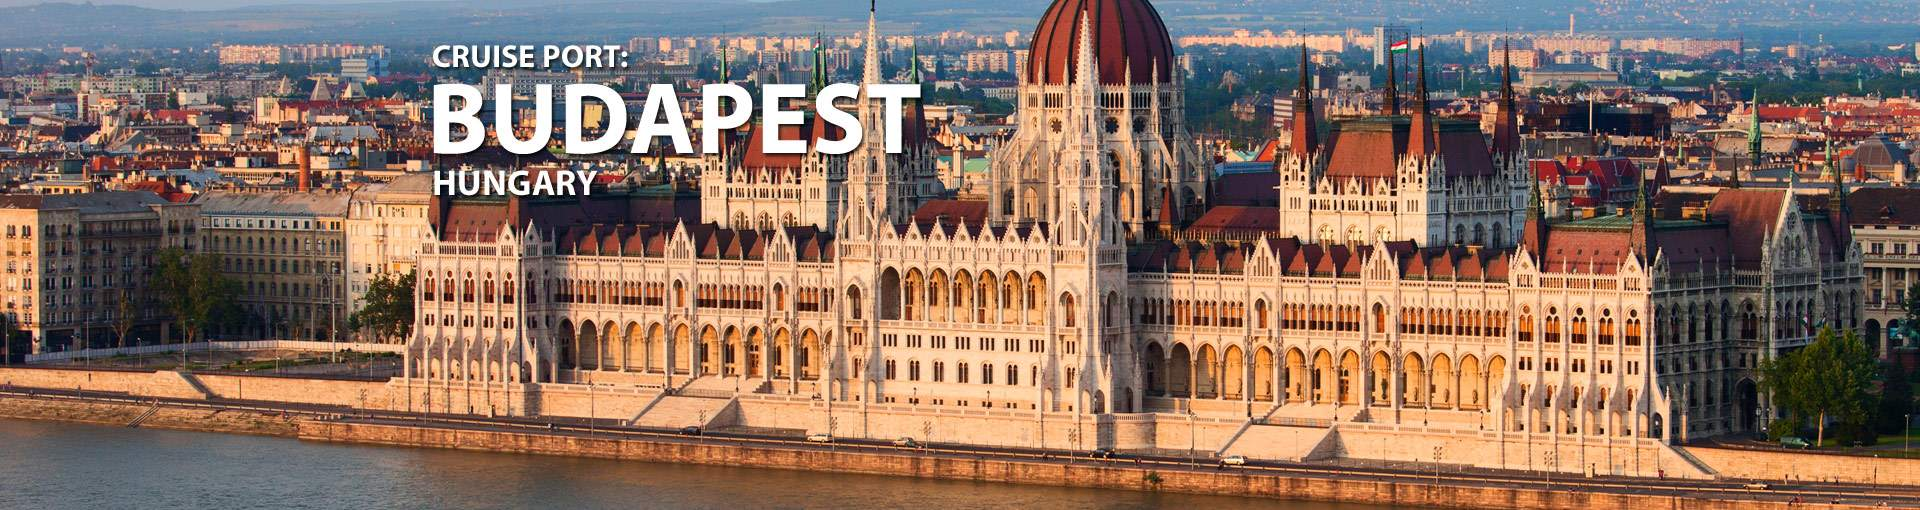 Cruises from Budapest, Hungary